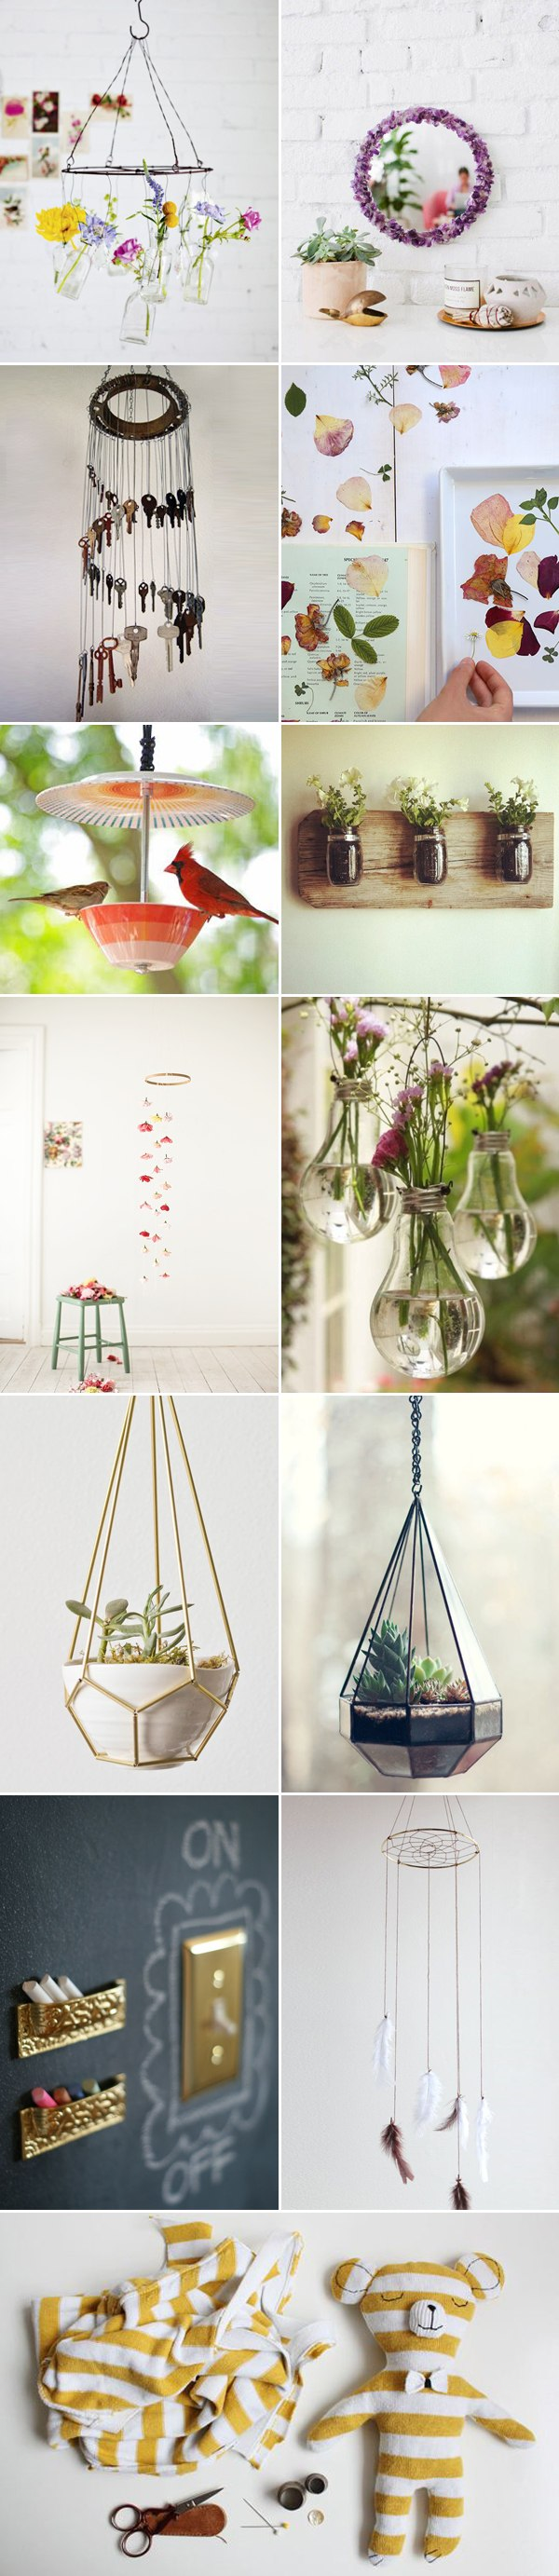 54+ Ideas on How to Creatively Recycle Old Items In Superb DIY Projects